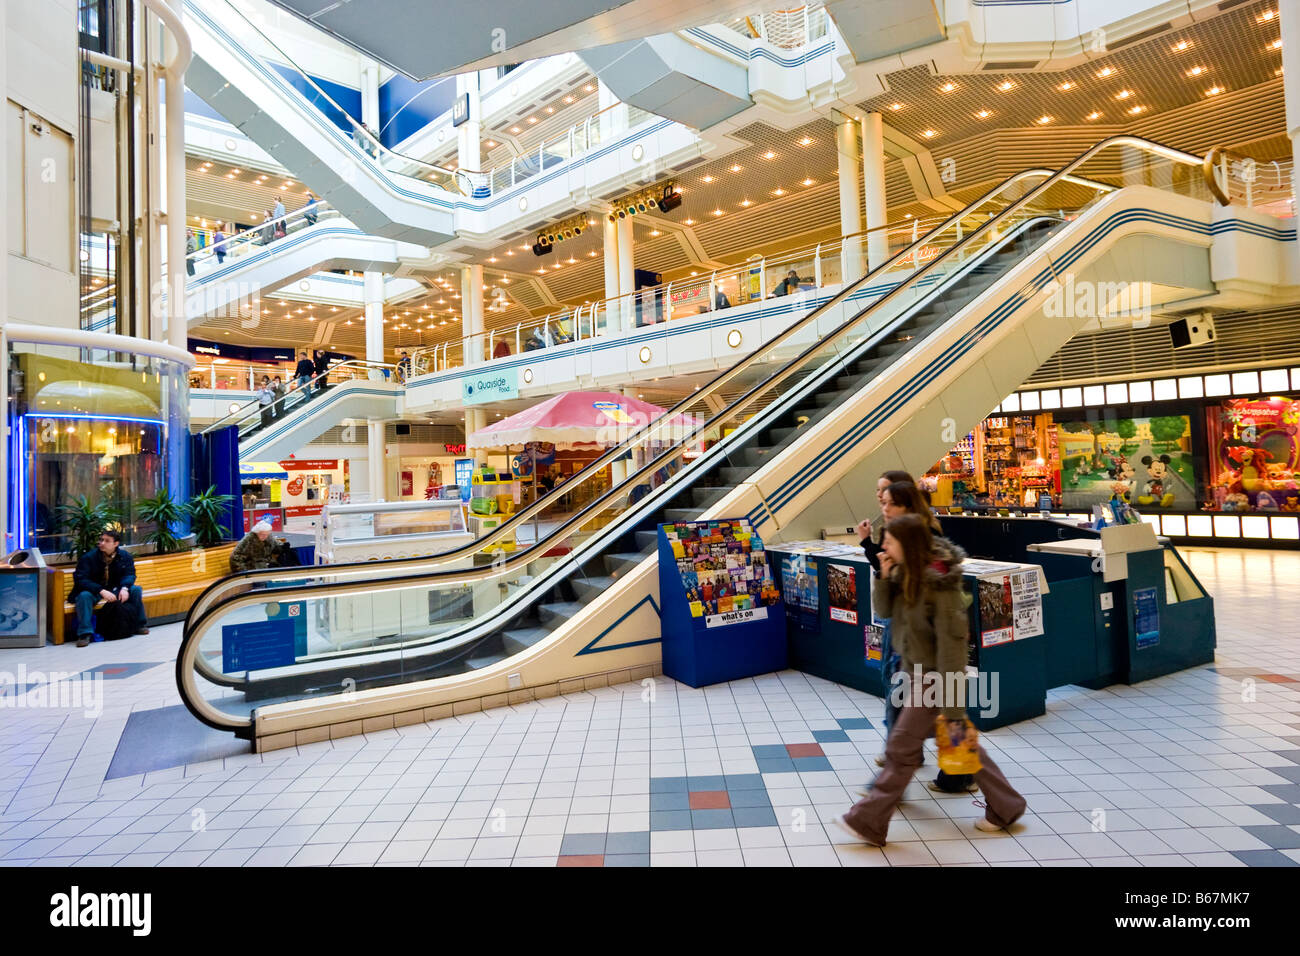 cfcc84383f Princes Quay shopping centre uk in Hull East Yorkshire England UK - Stock  Image